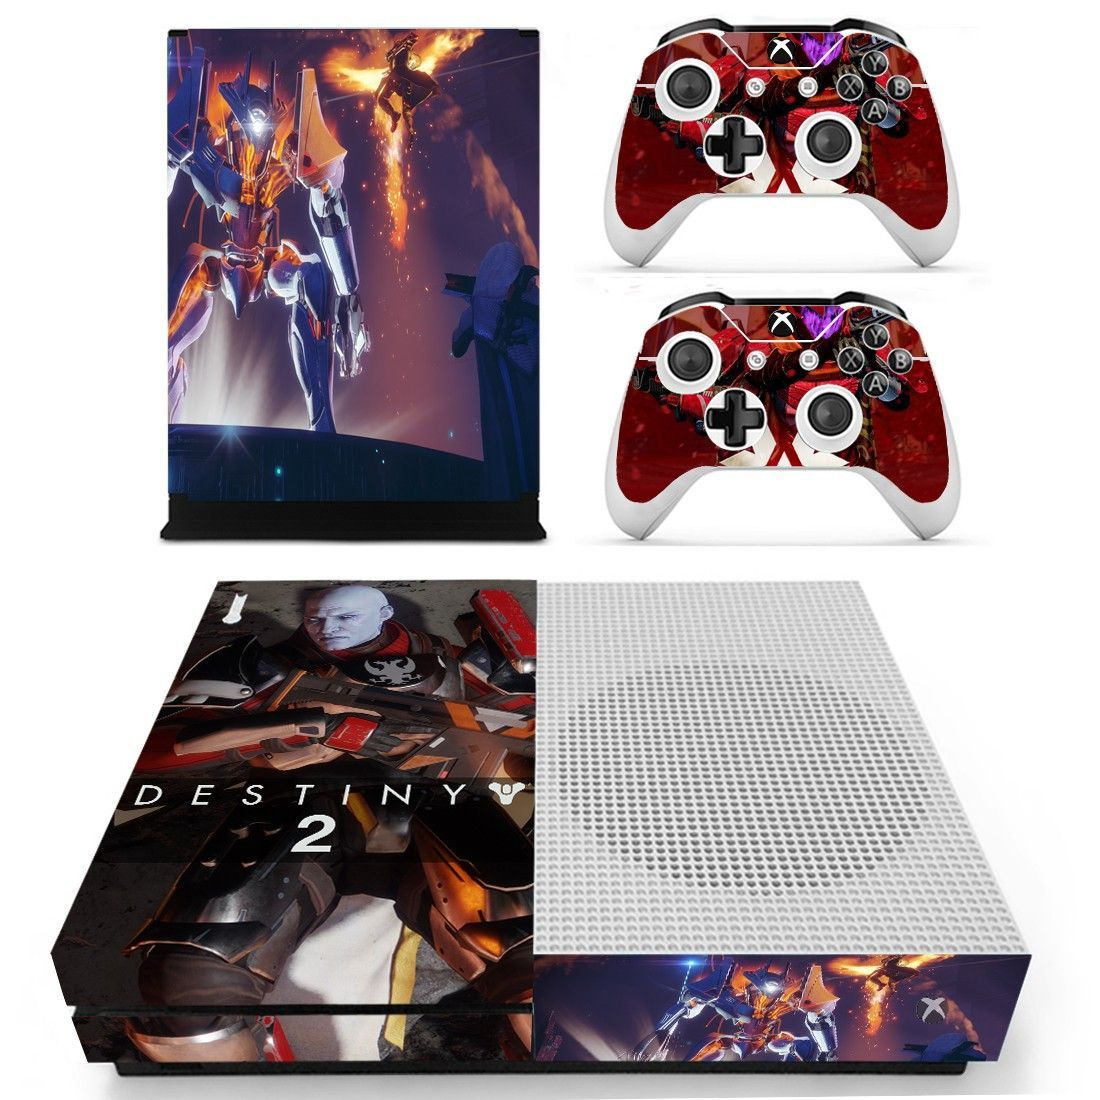 Destiny 2 design skin decal for xbox one s console and 2